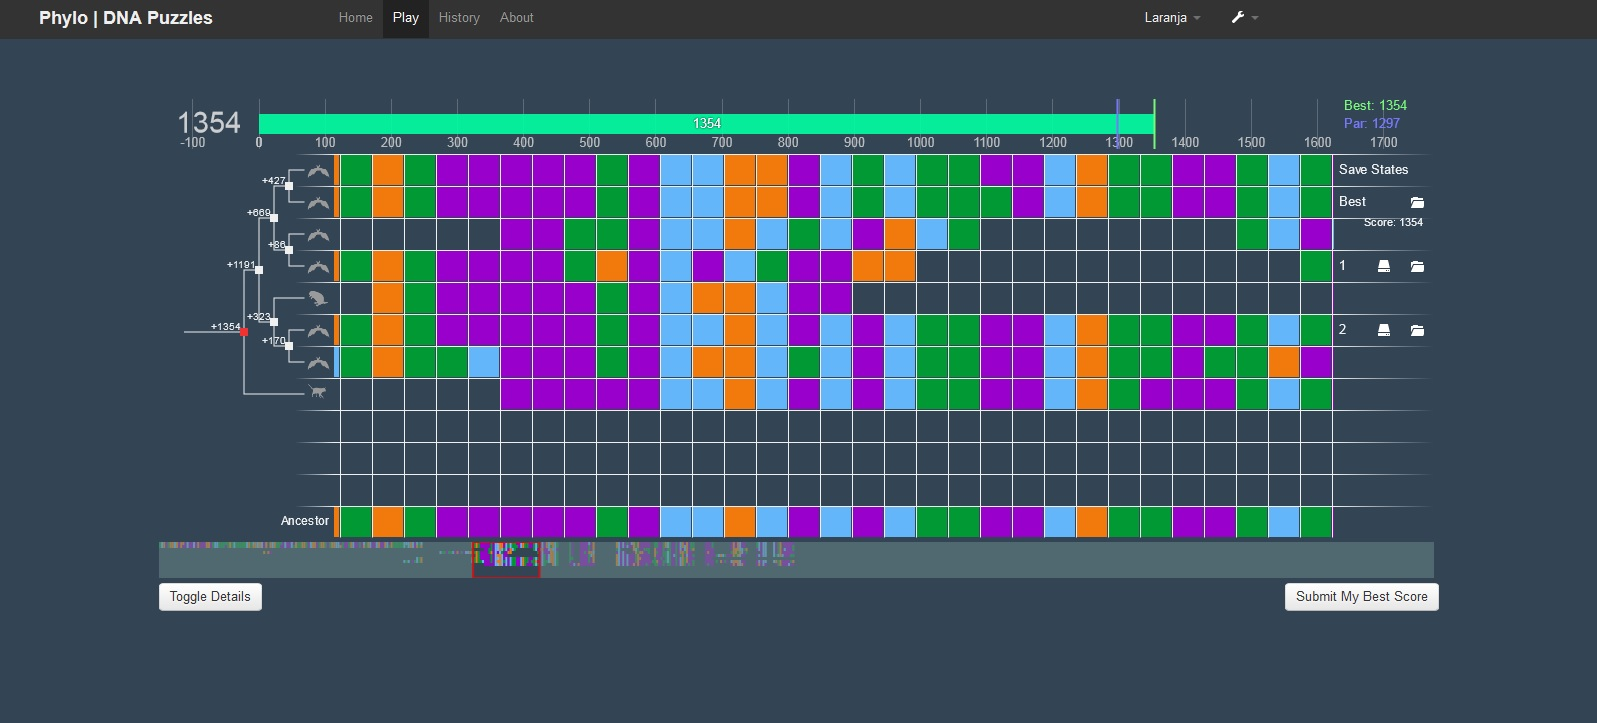 Phylo sequence alignment game